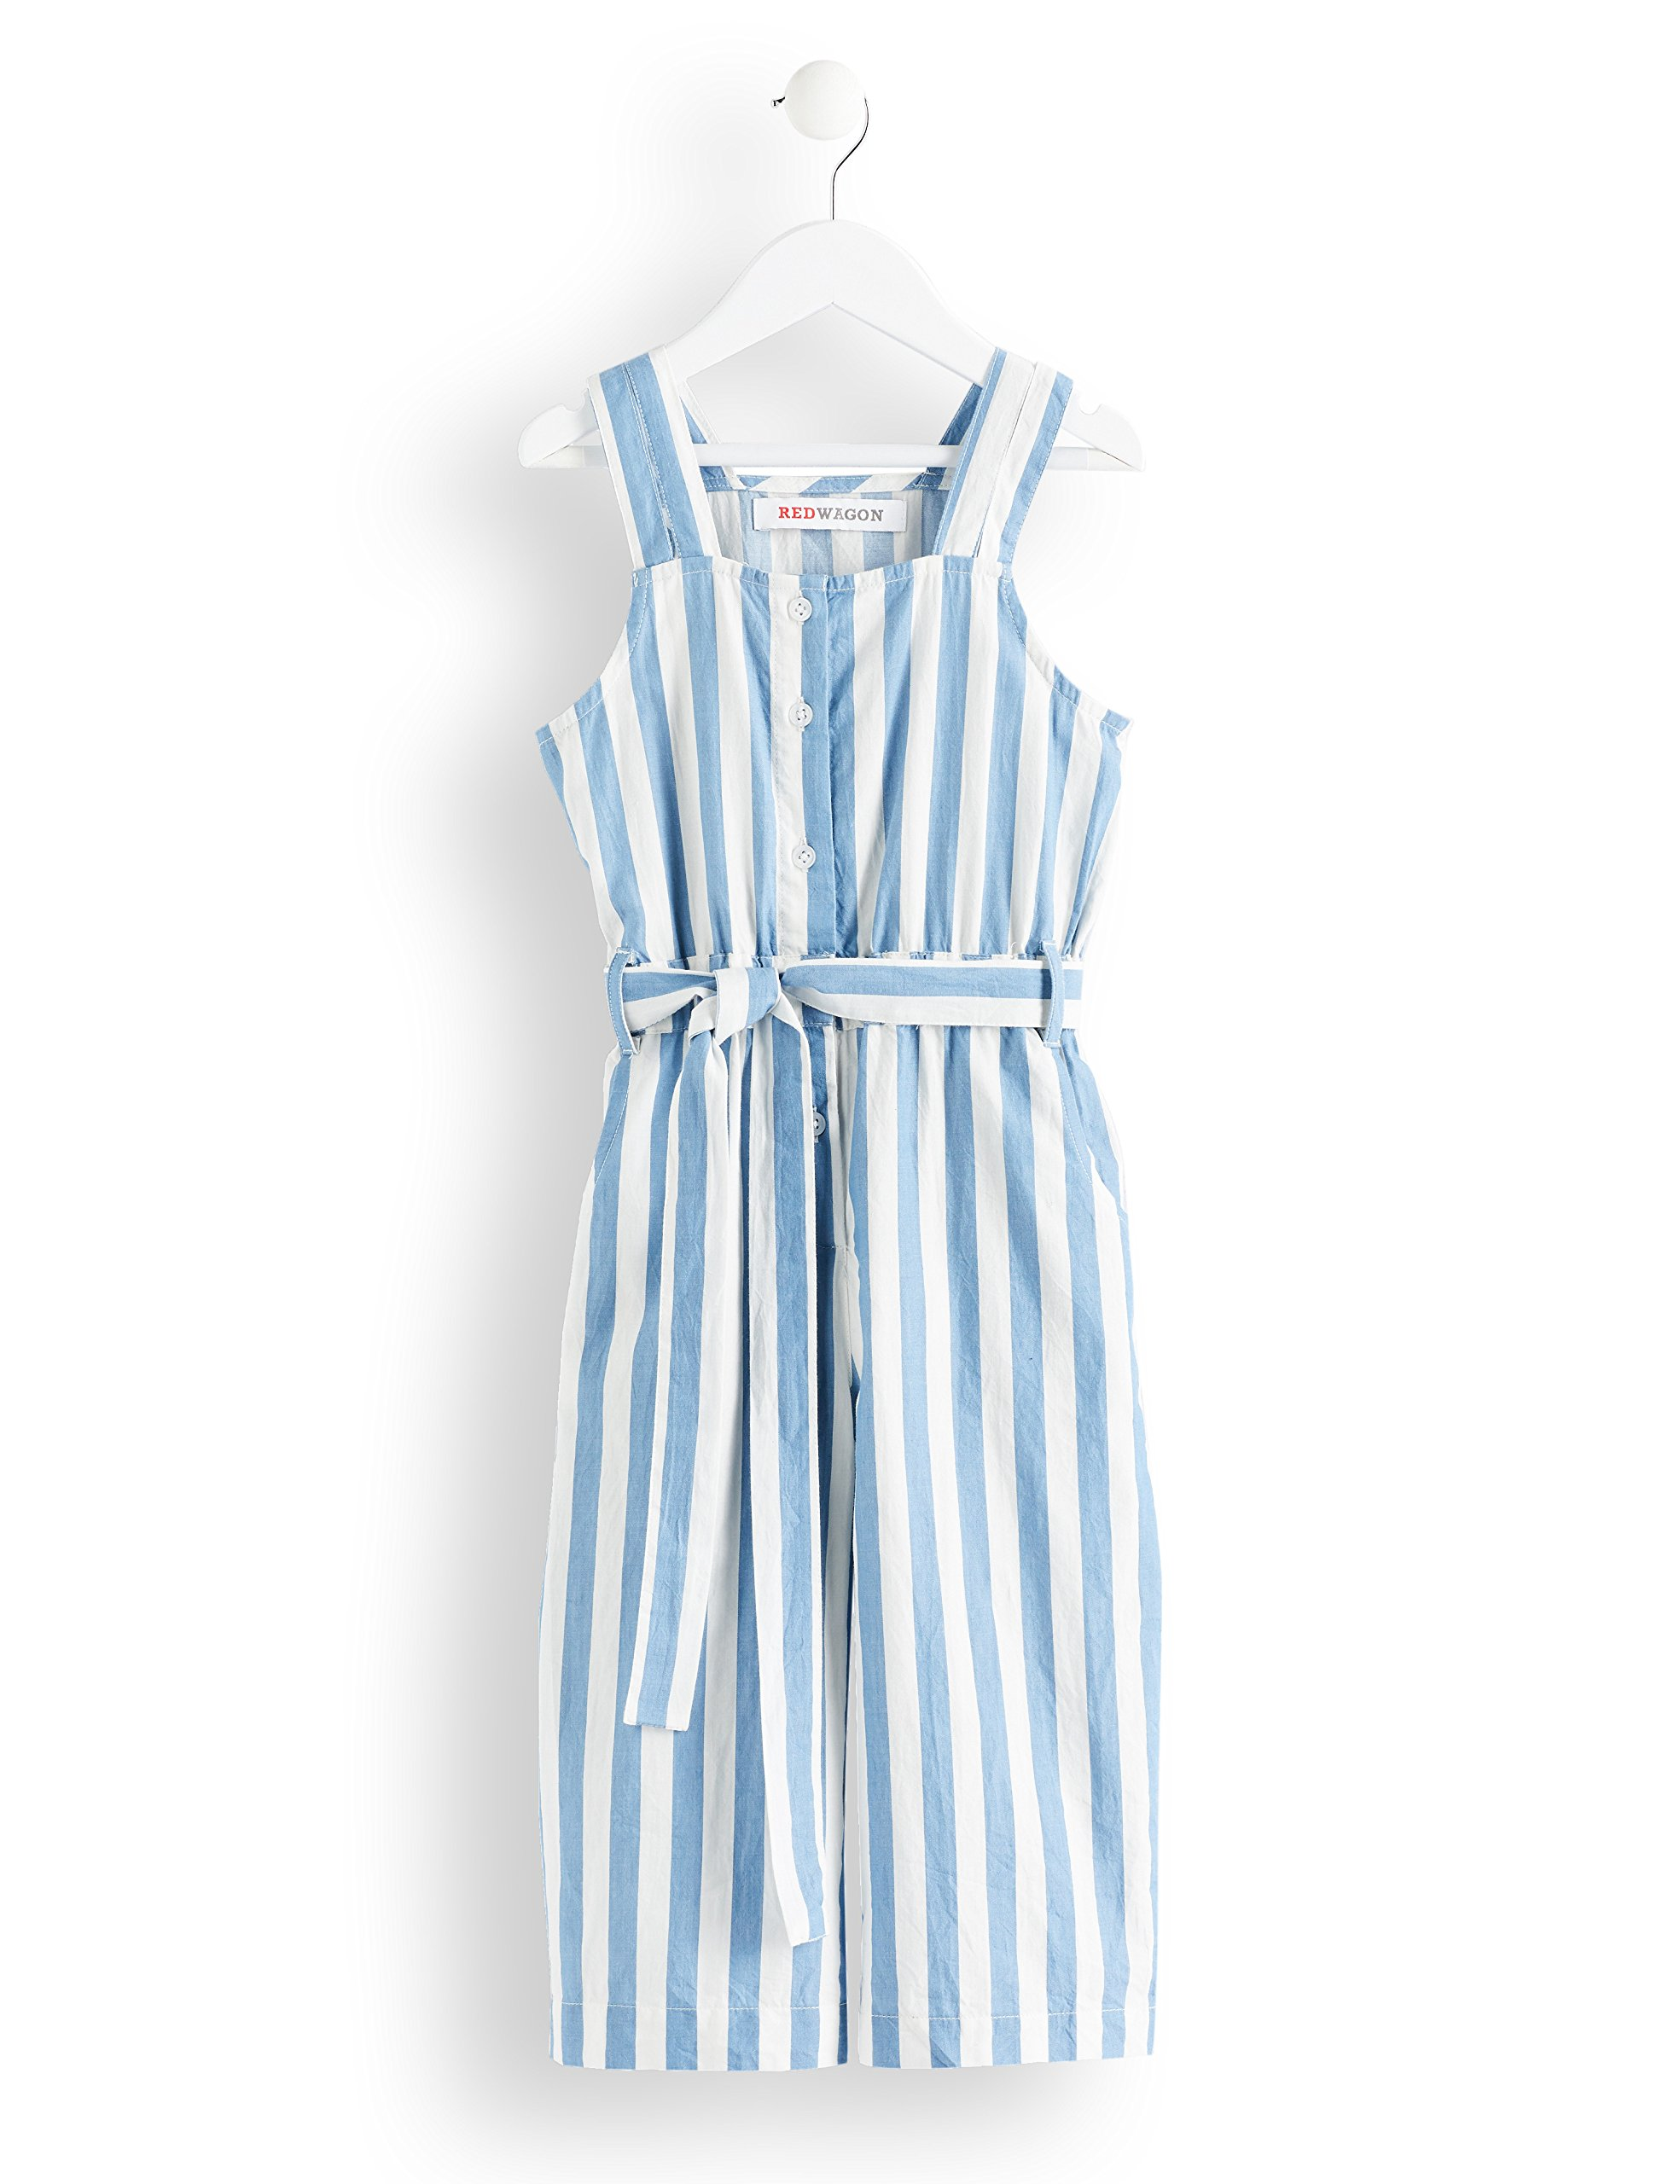 RED WAGON Girl's Striped Waist Tie Jumpsuit, White (Blue and White), 110 (Manufacturer Size: 5 Years)